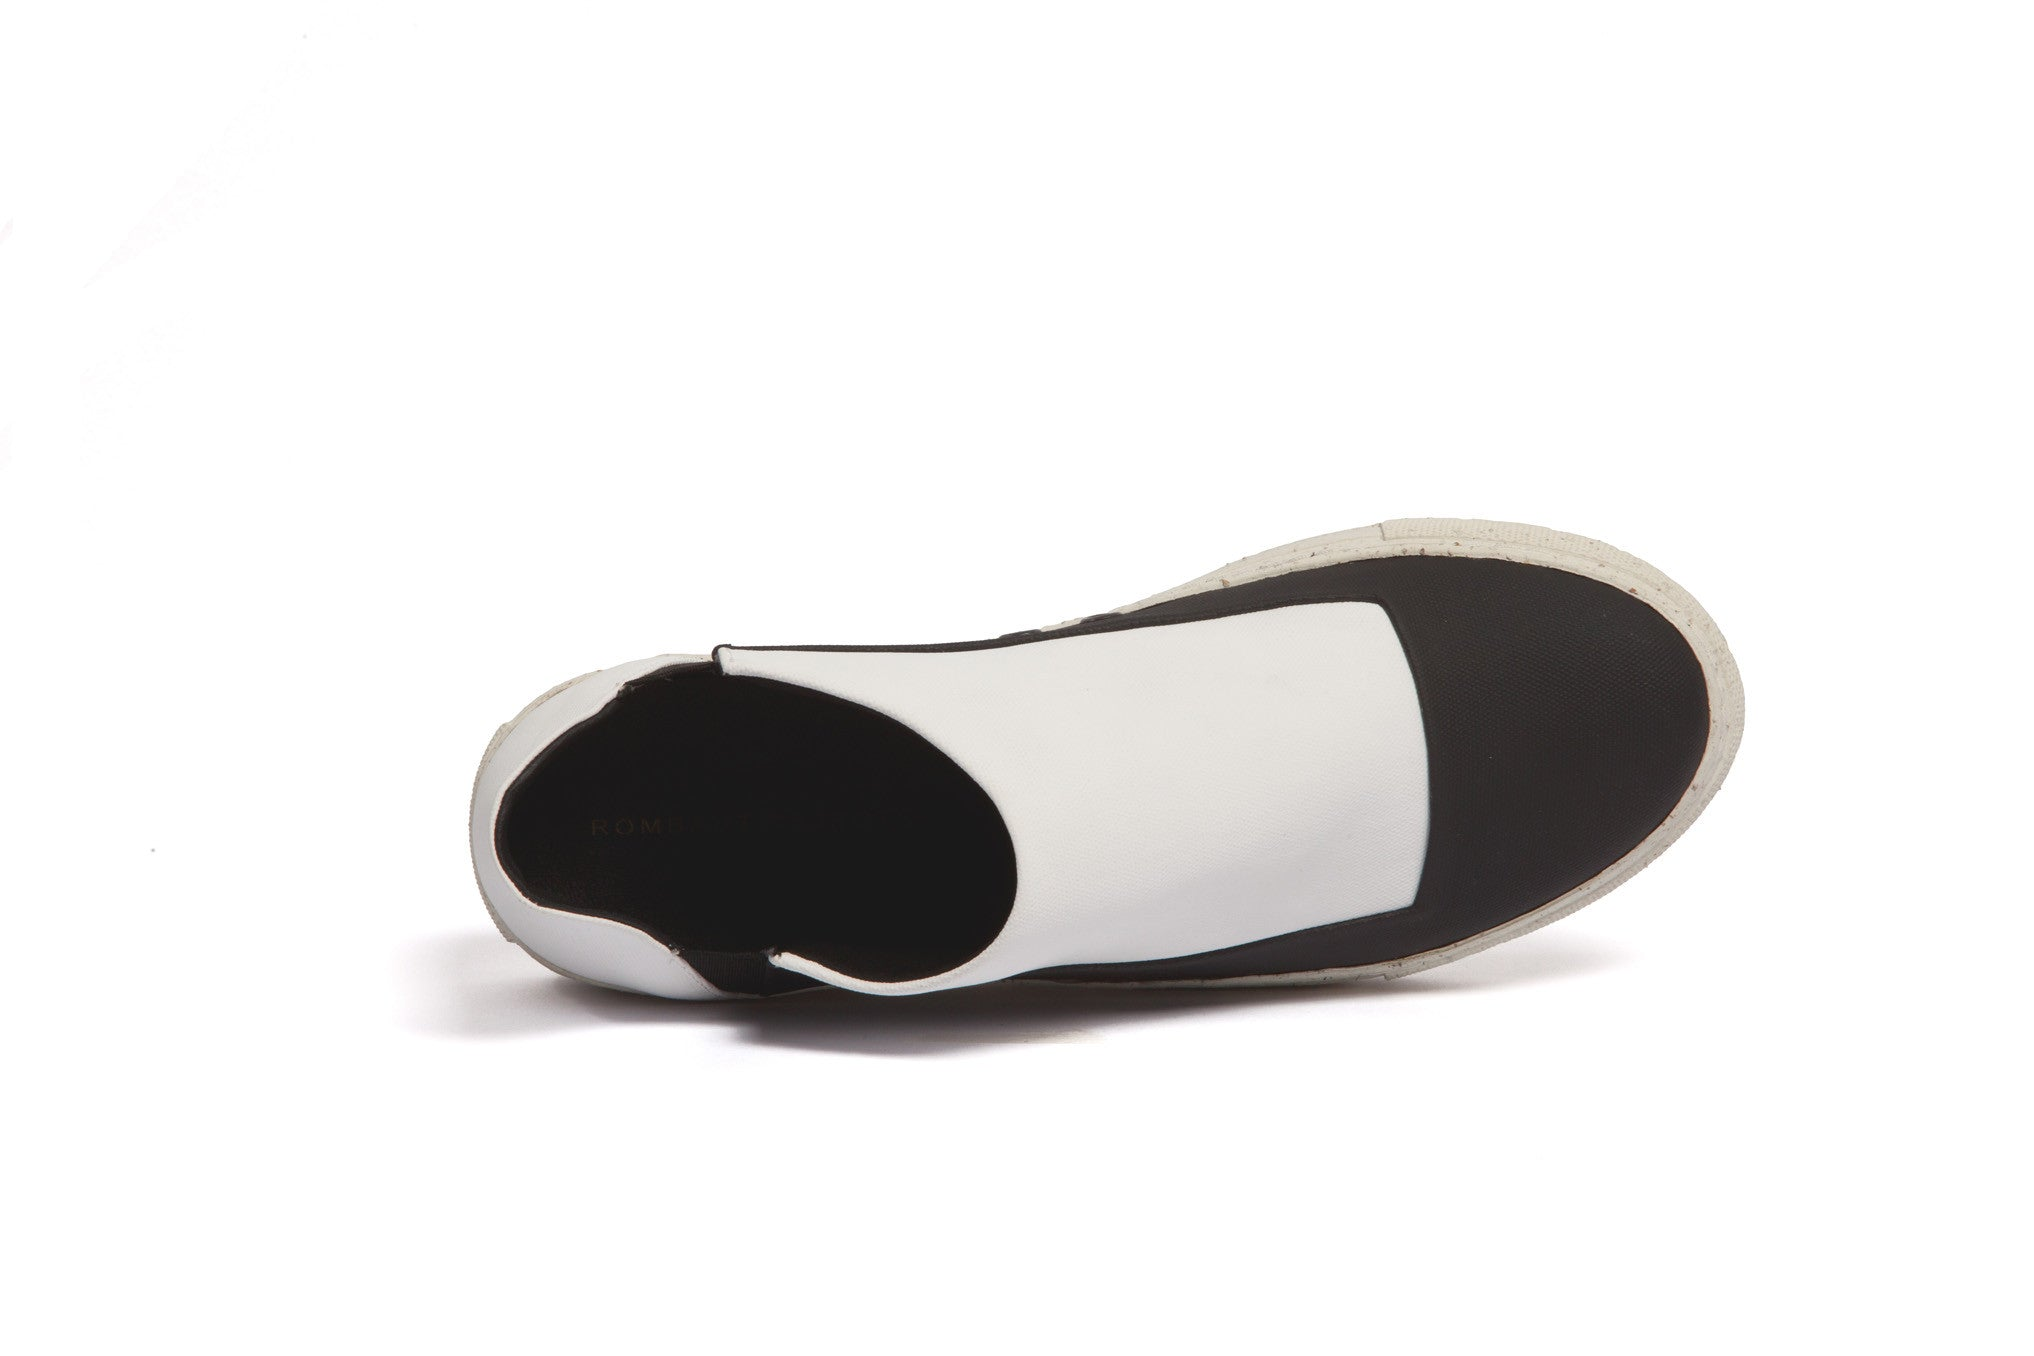 slip-on BLACK & WHITE